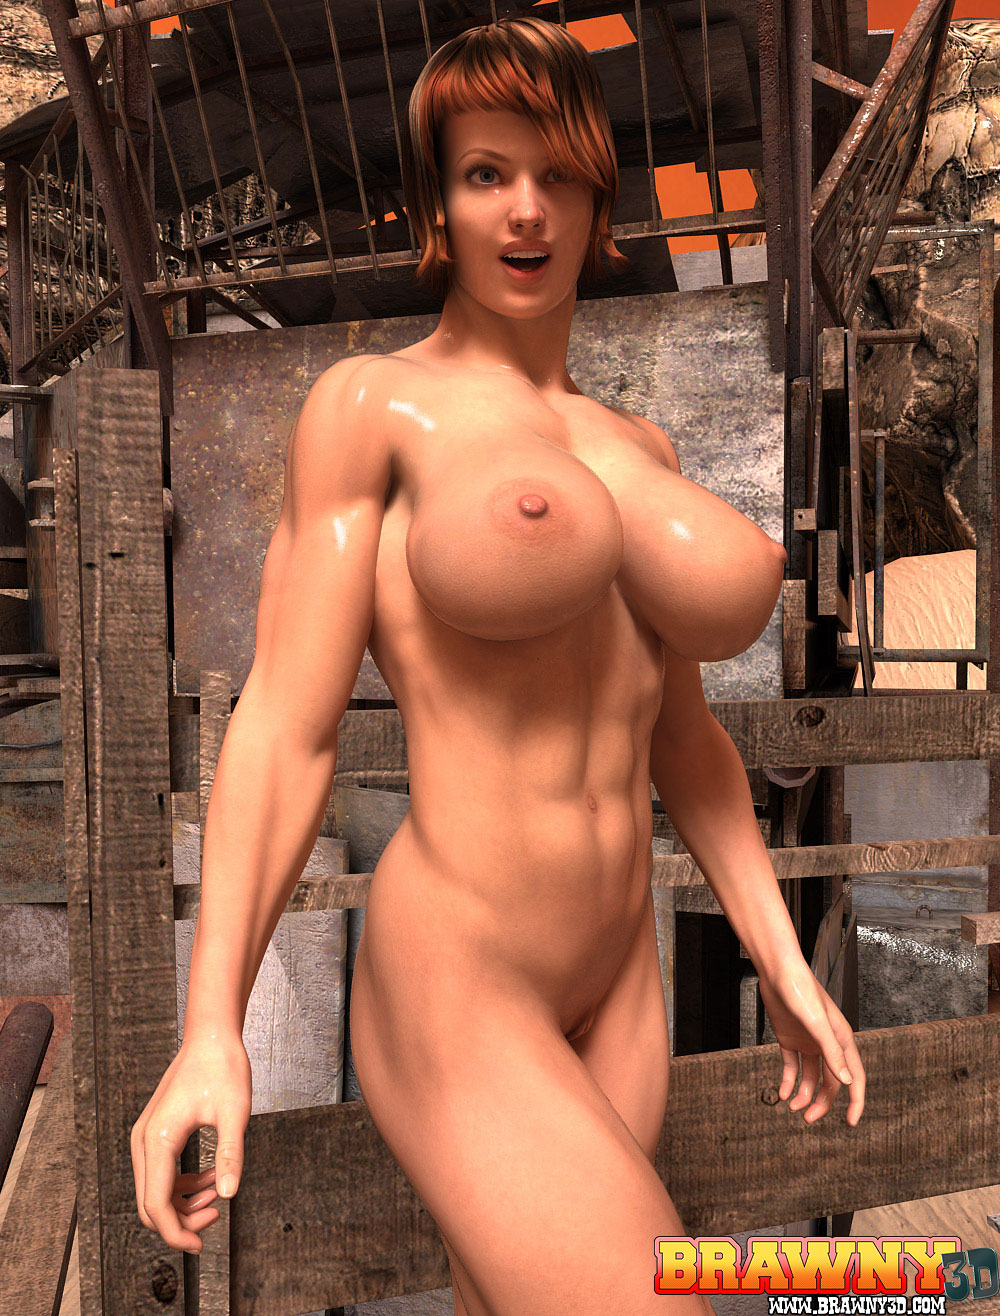 Sweet 3d nude sexy photo